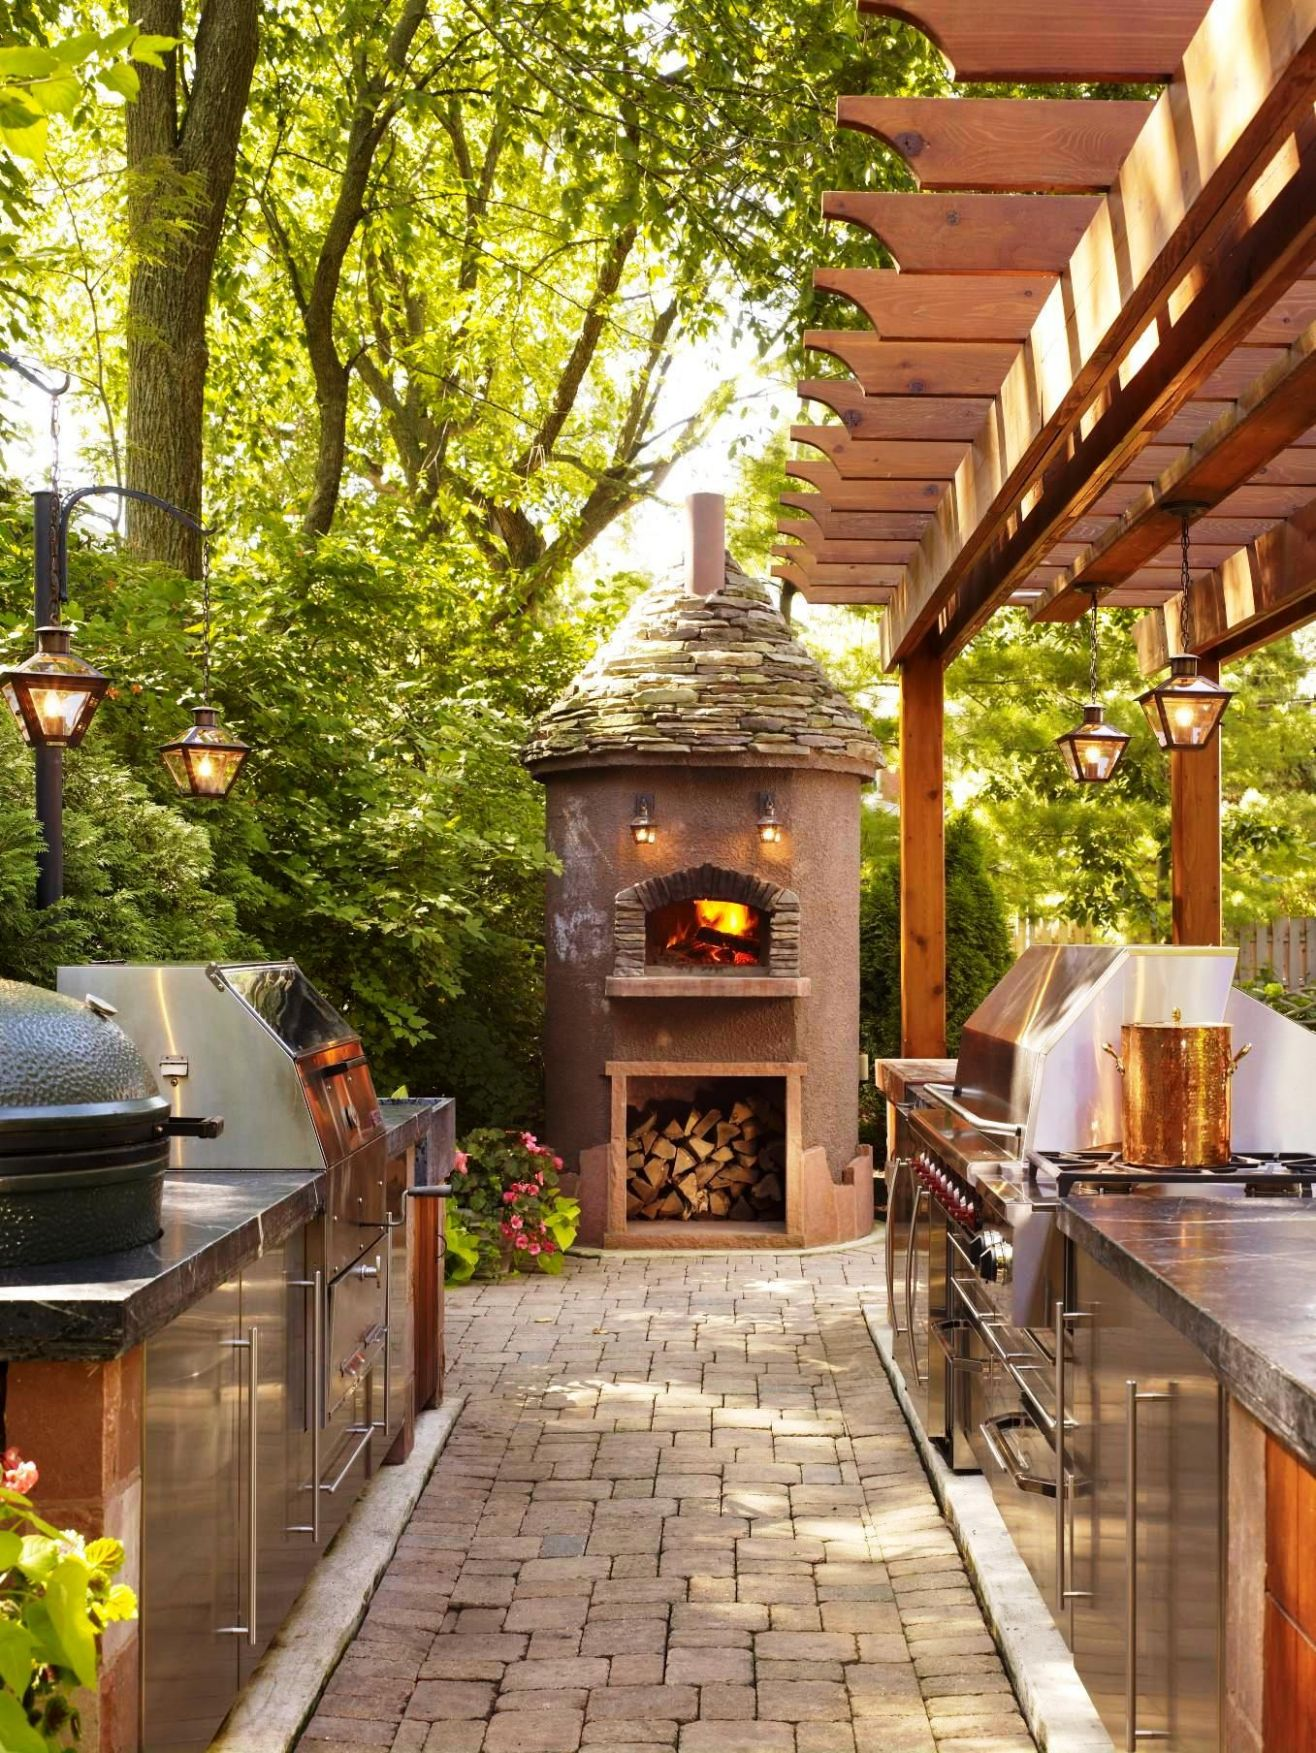 12 grill setups that will leave you salivating | Backyard, Outdoor ..